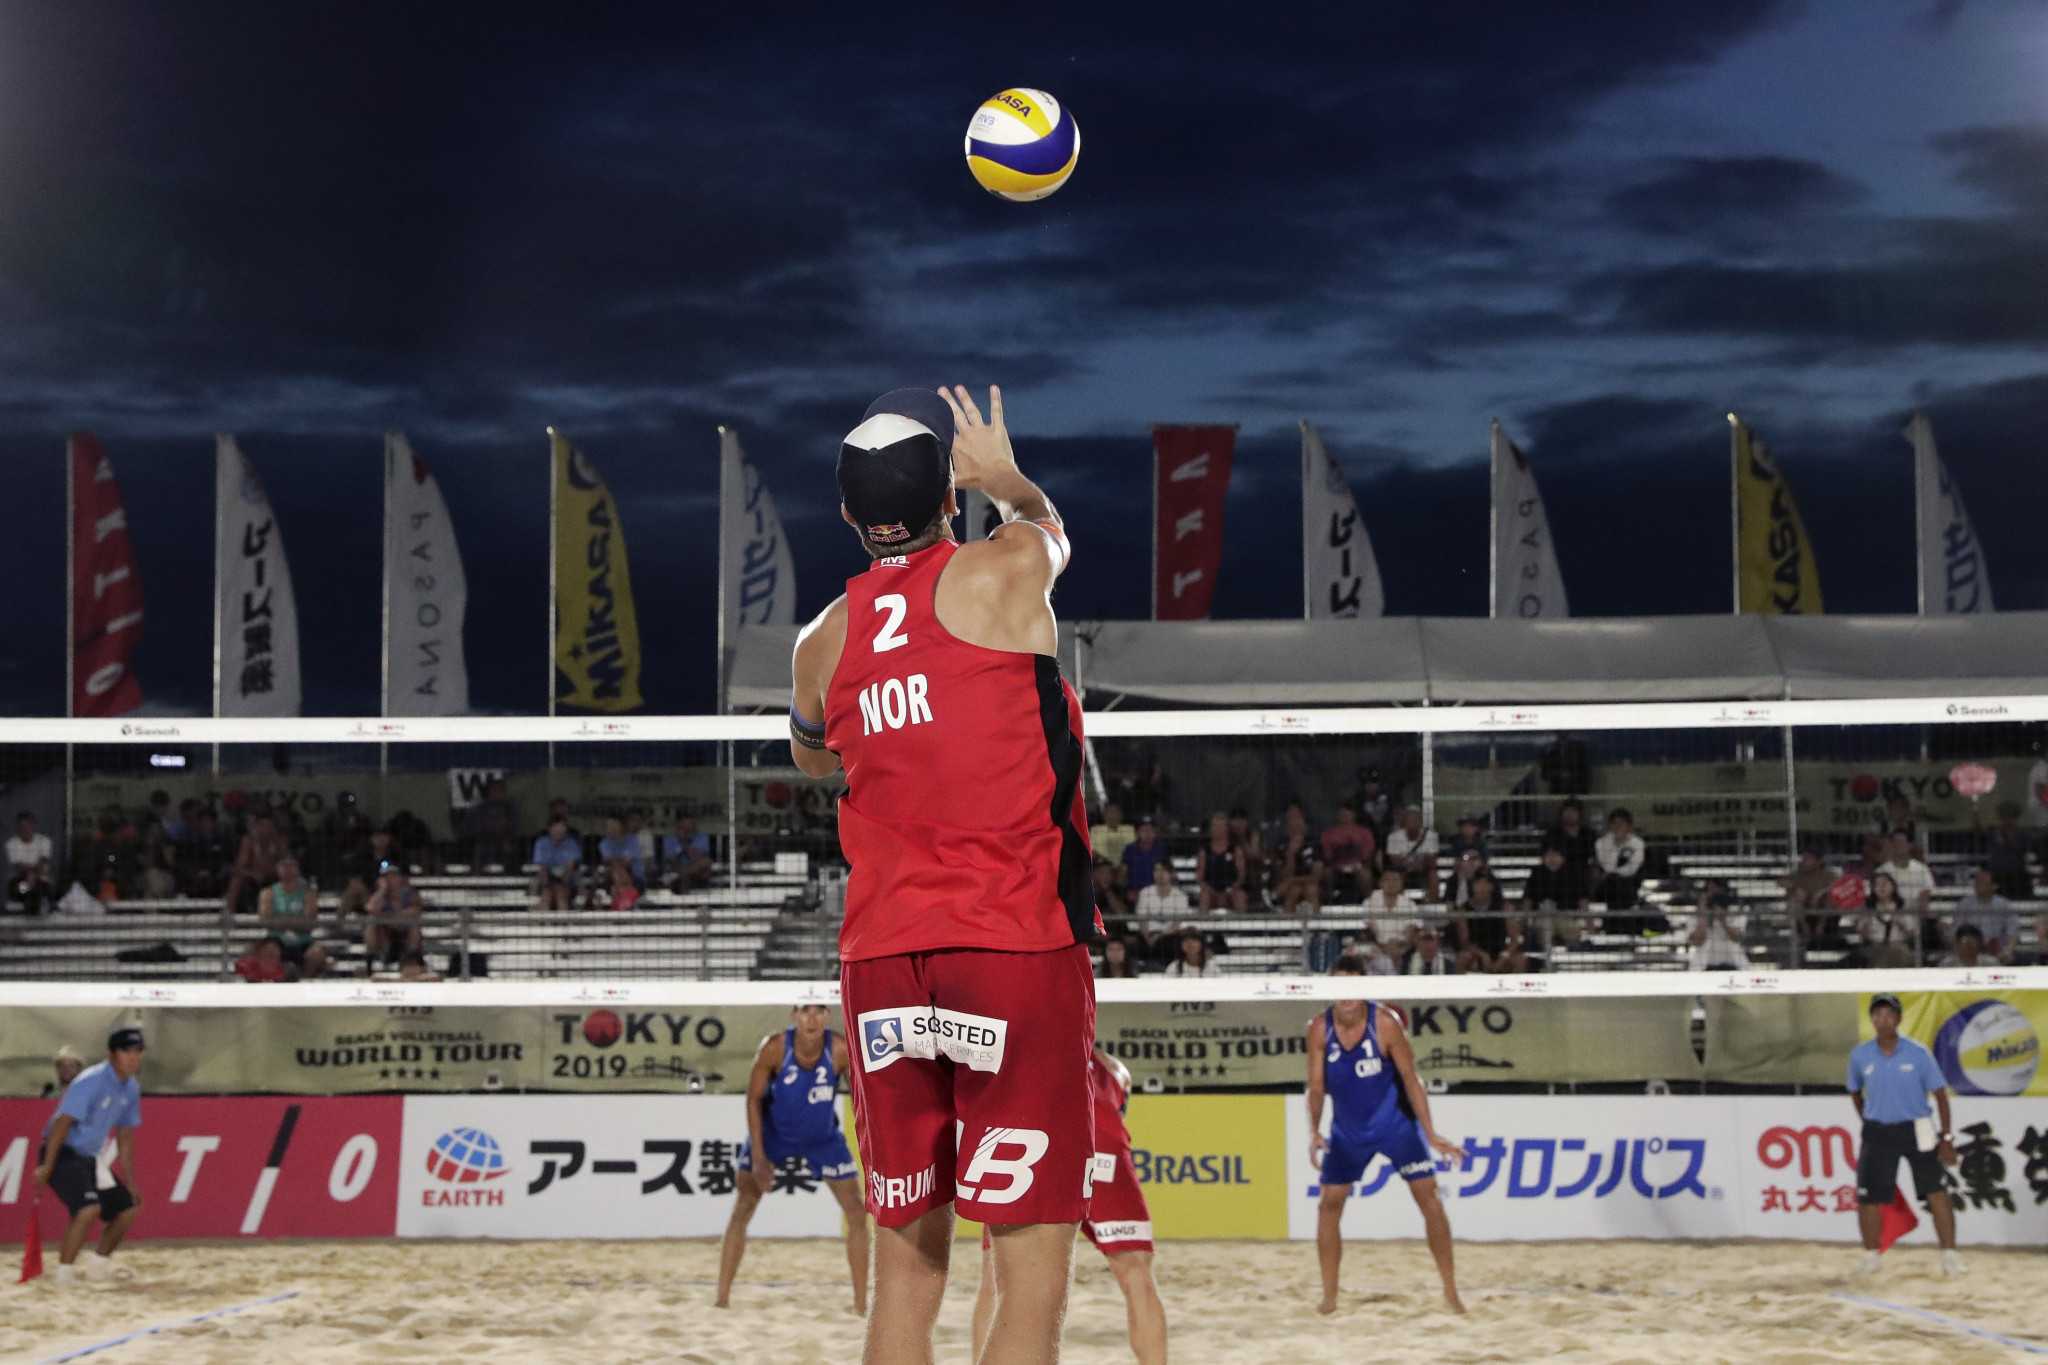 Top men's seeds safely through at FIVB World Tour and Tokyo 2020 test event